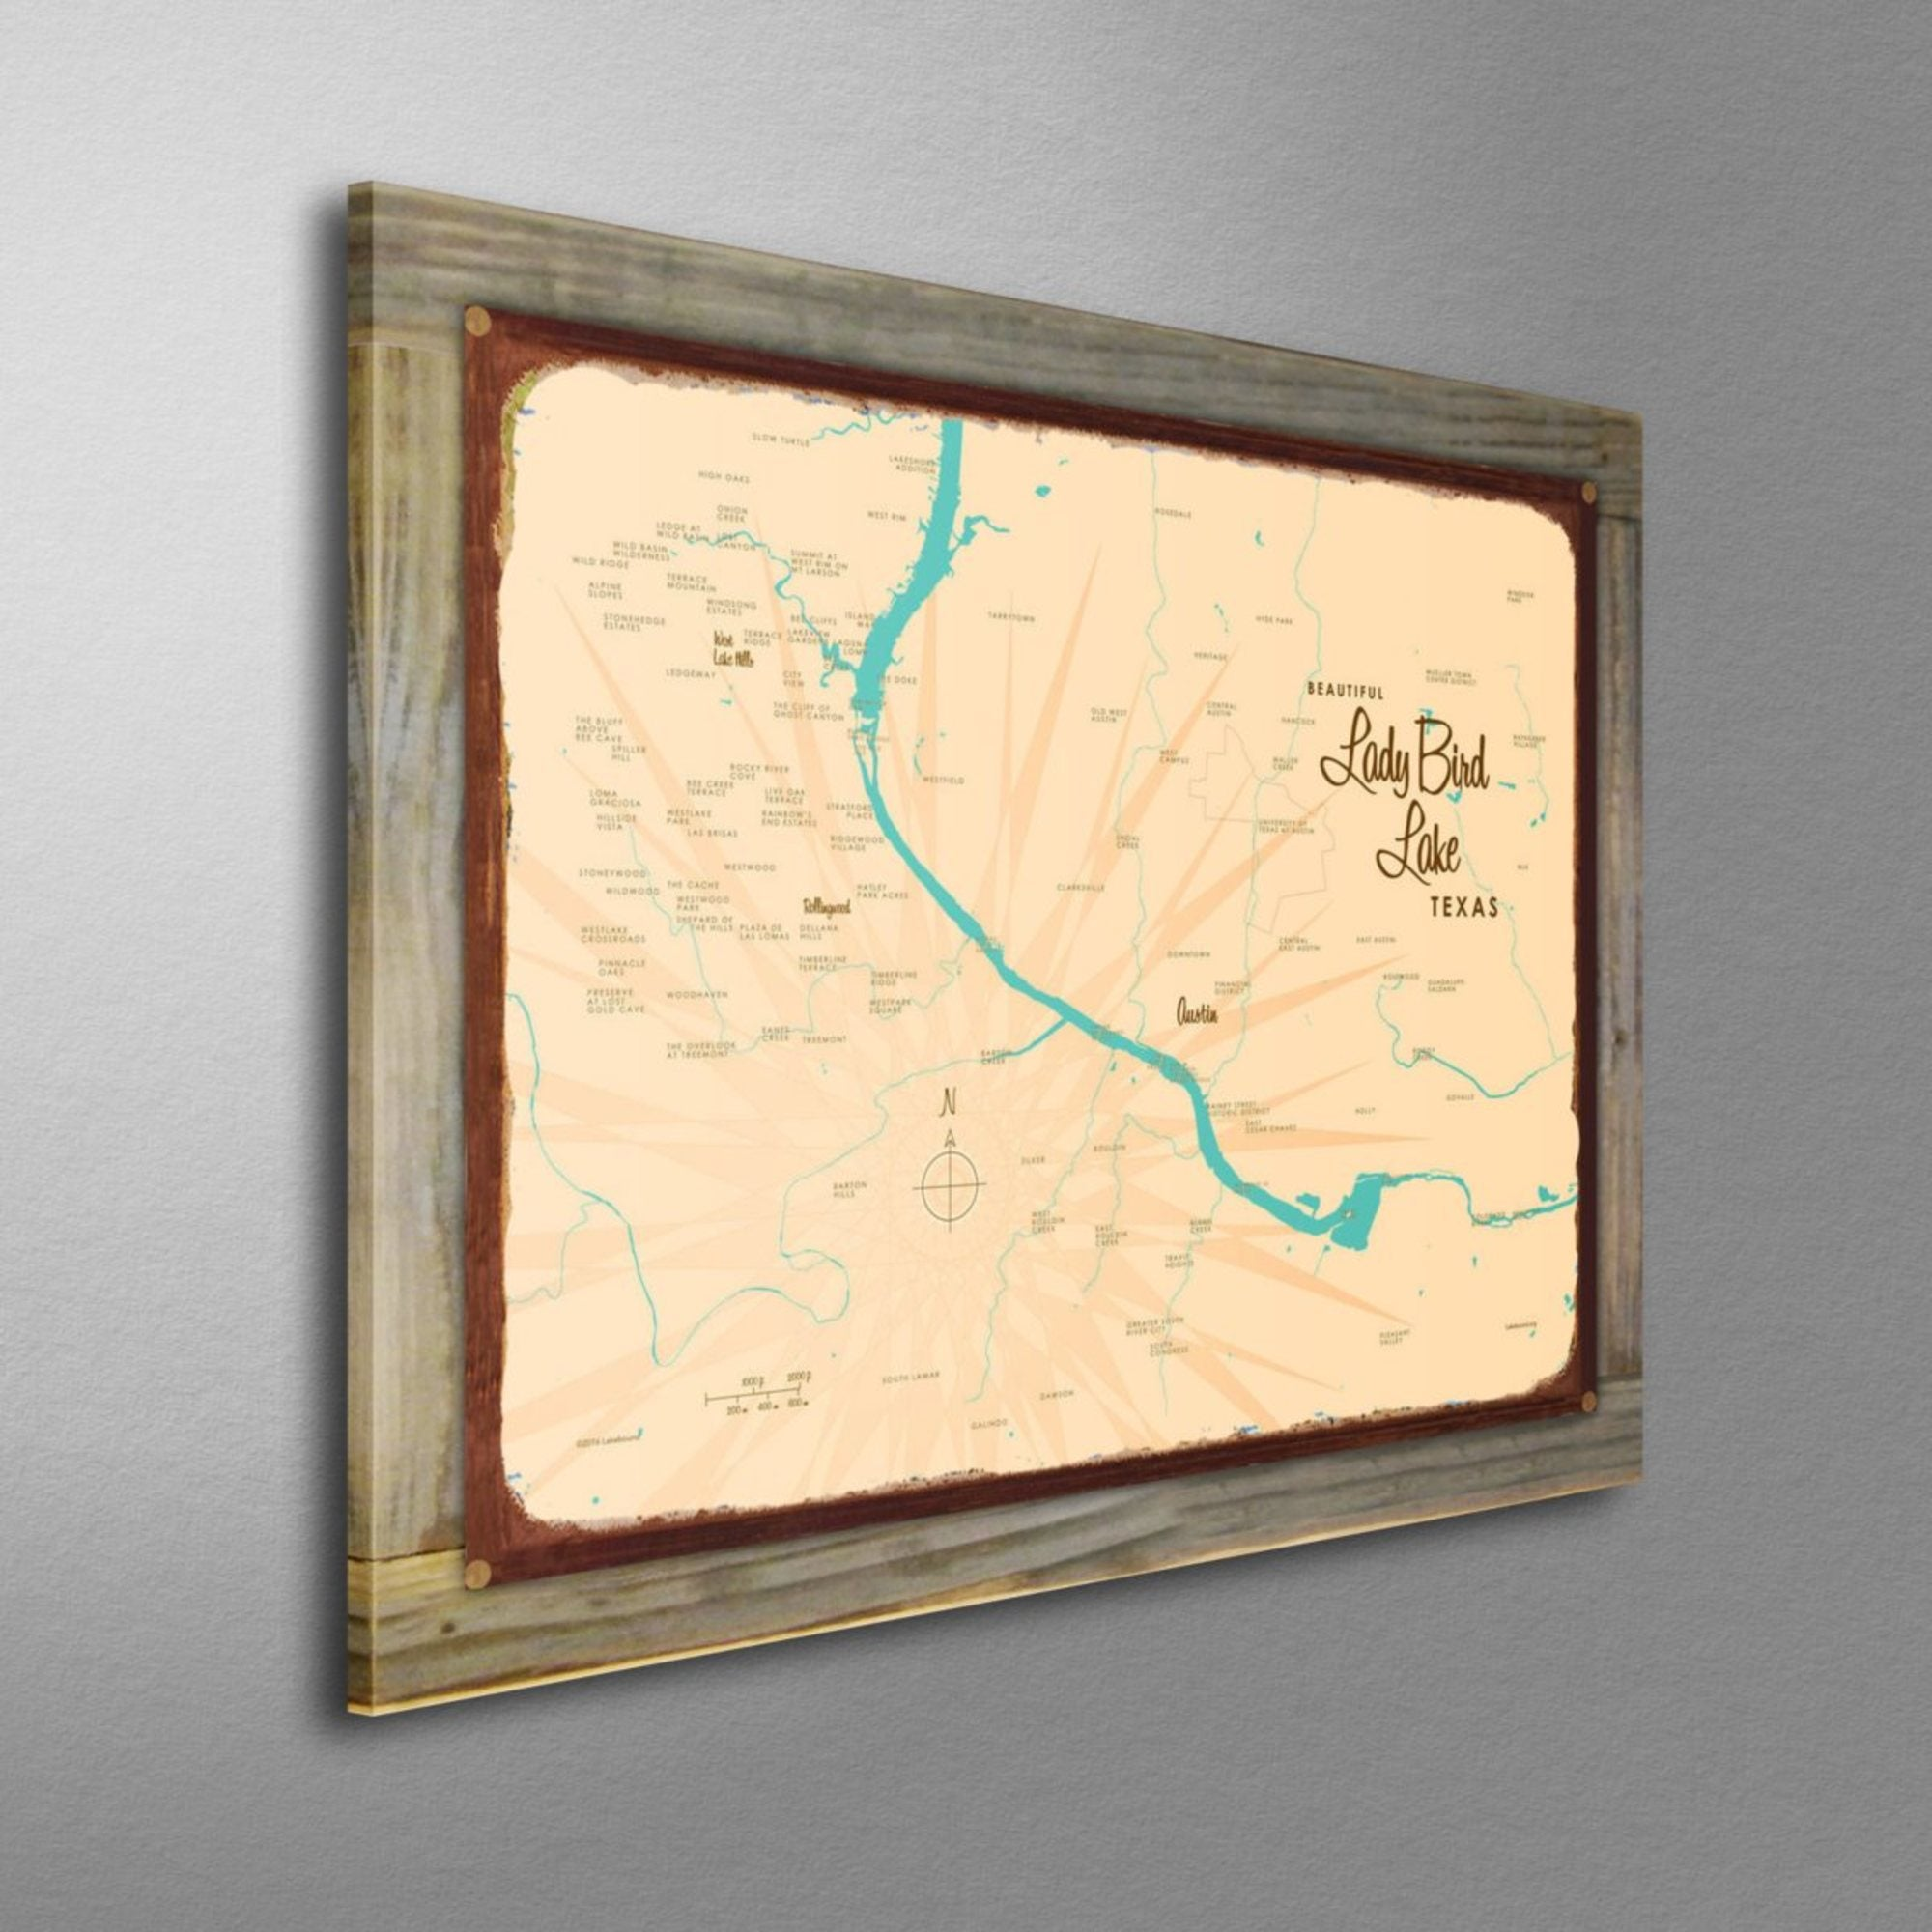 Lady Bird Lake Texas, Wood-Mounted Rustic Metal Sign Map Art